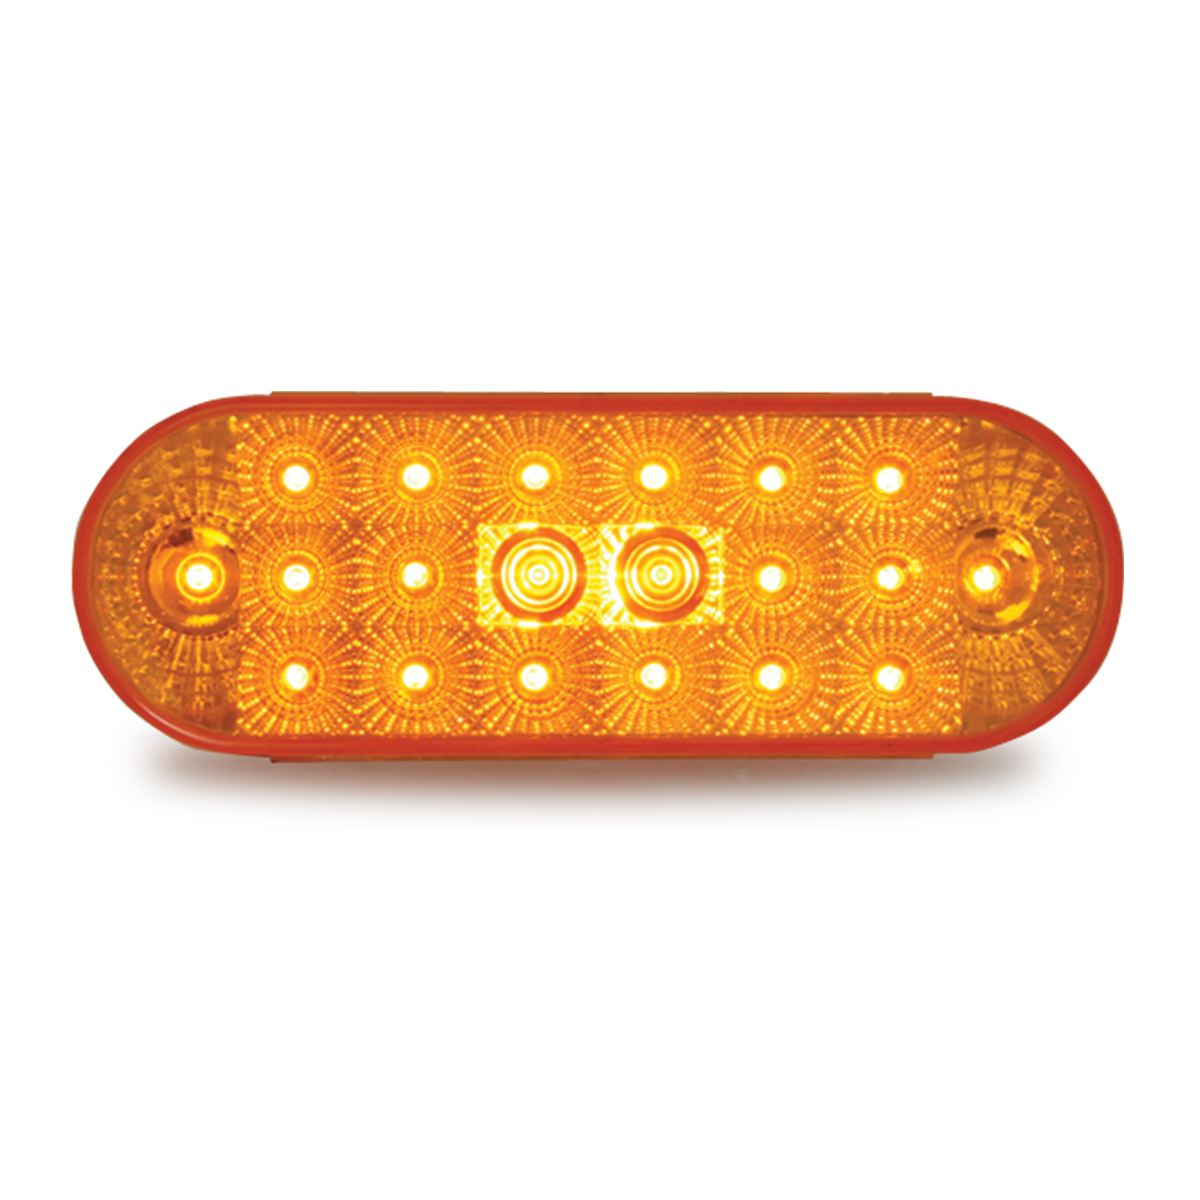 77050 Oval Spyder LED Light in Amber/Amber